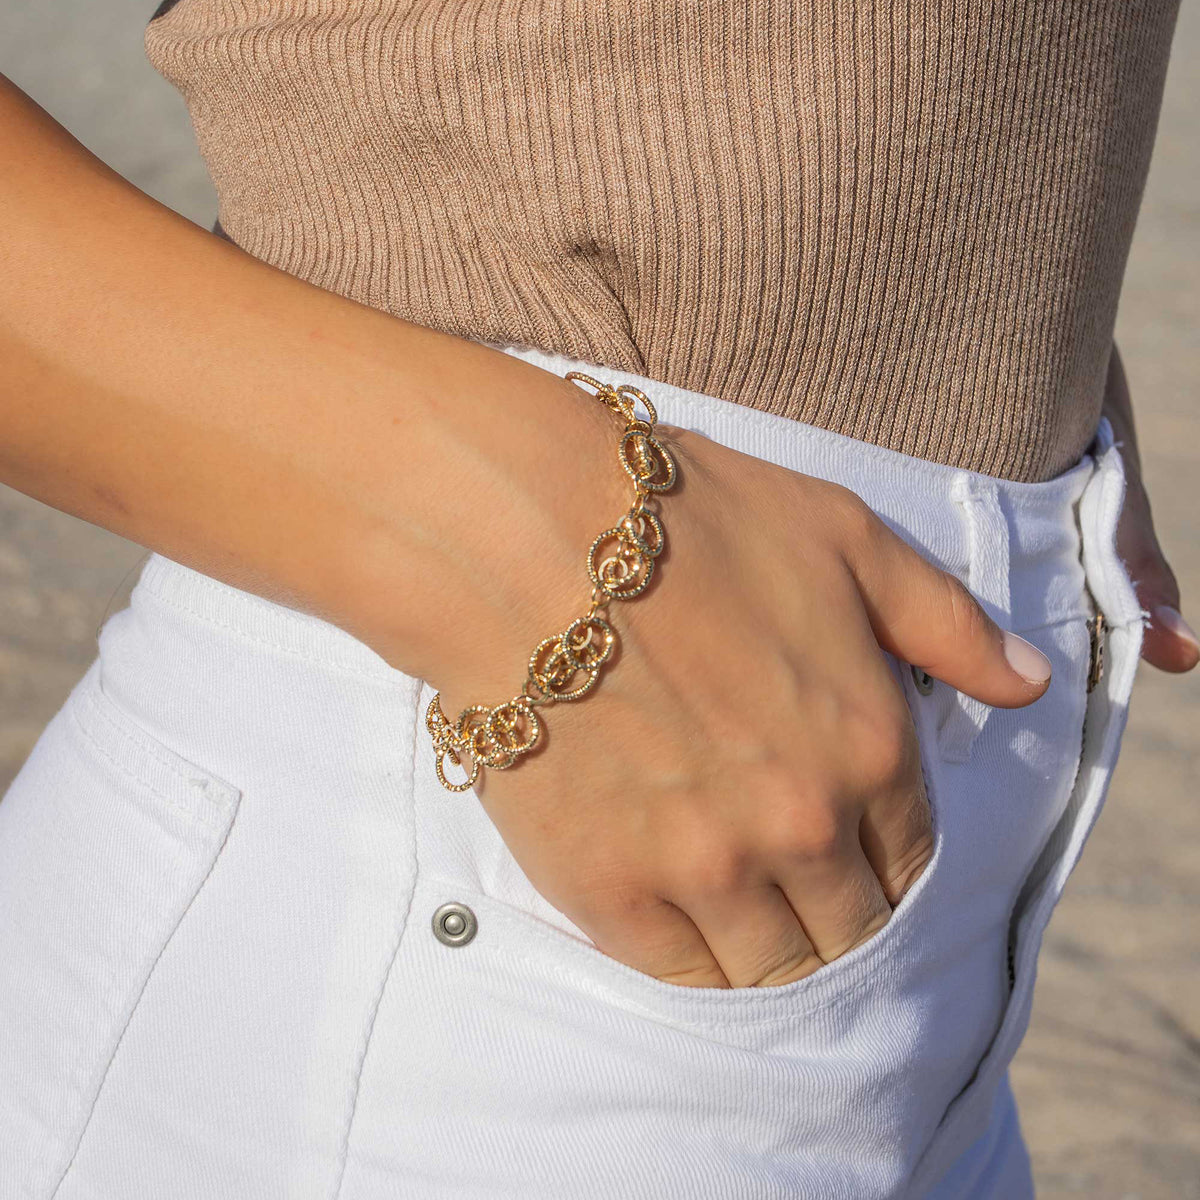 The Circle Chain Link Bracelet